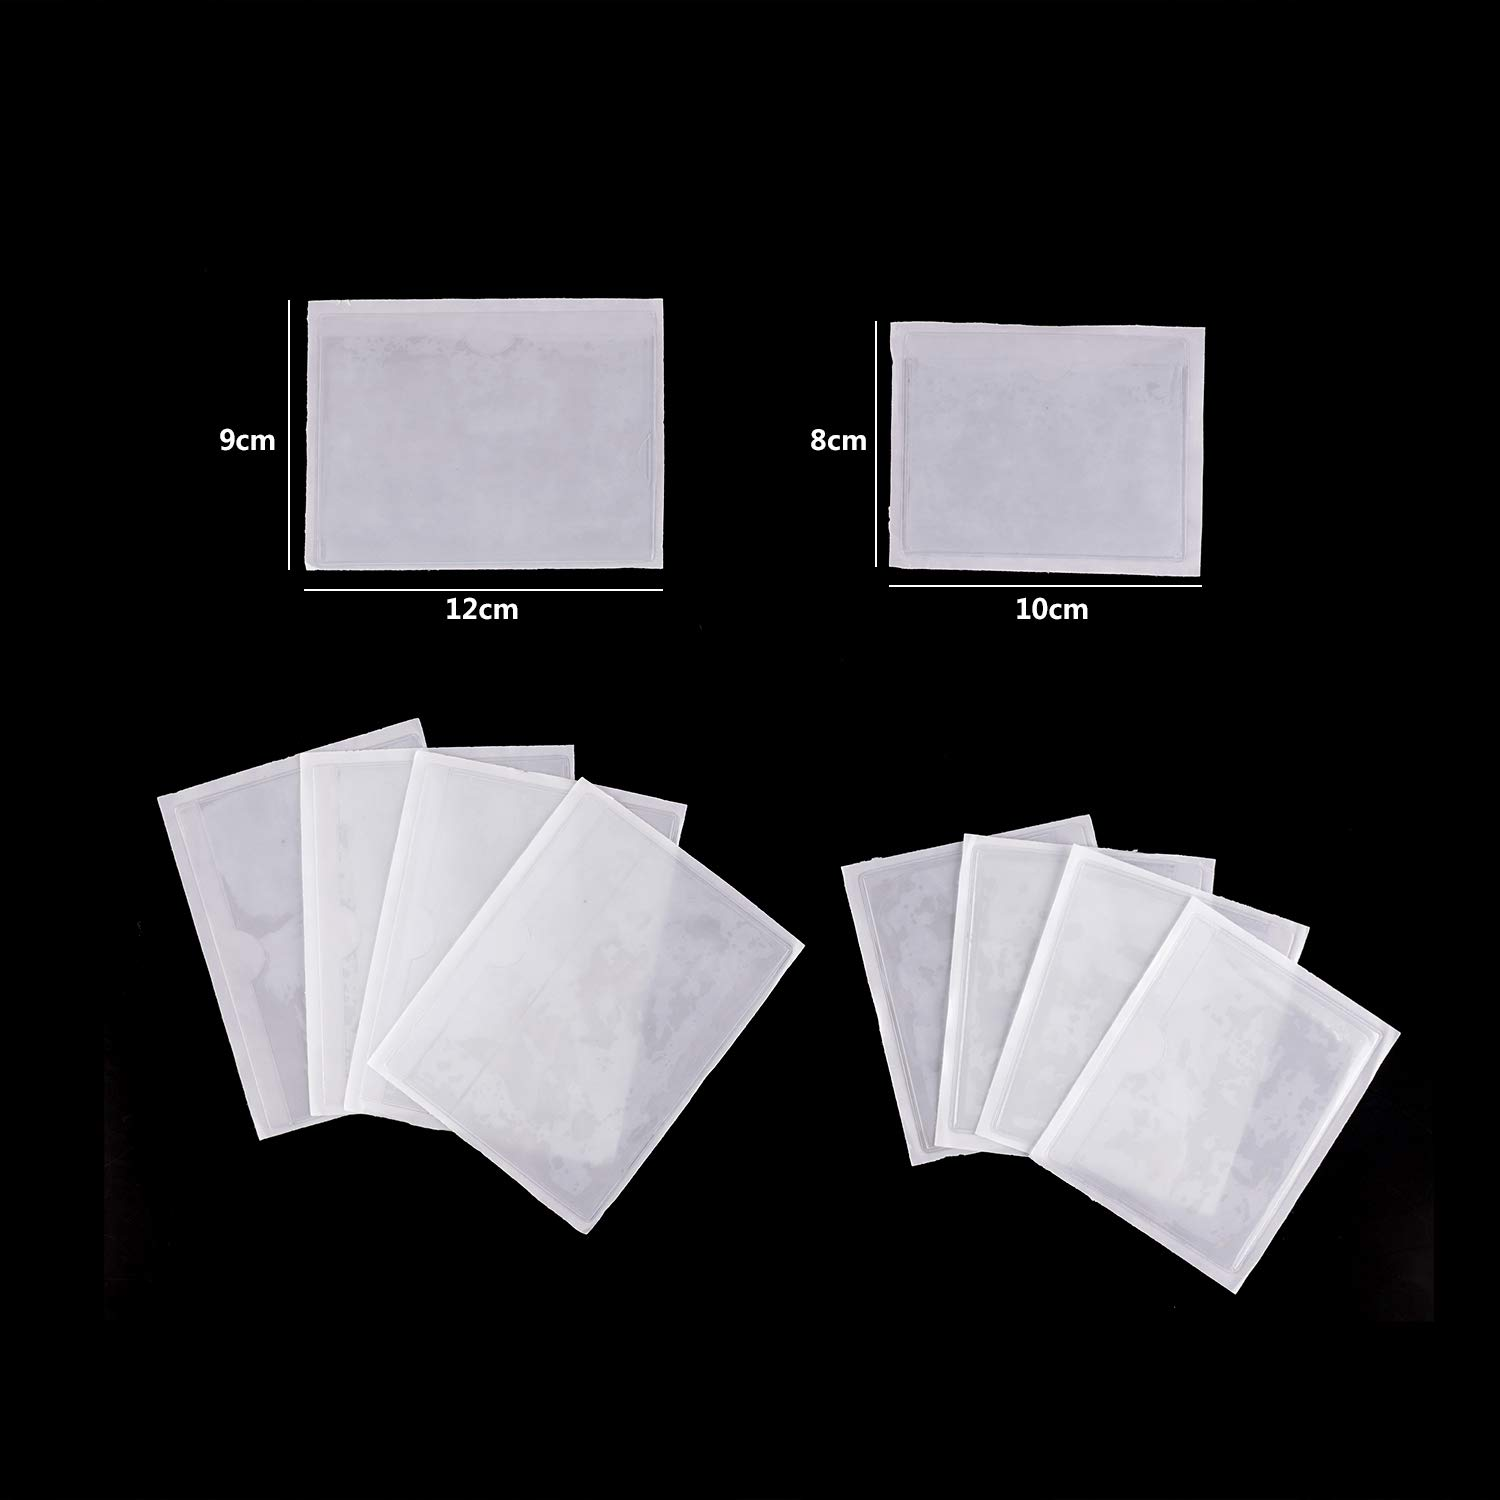 Self-Adhesive ID Badges Passports Holders Ticket and Note Pocket Pouches for Car Van Vehicle Caravan Windscreen 12 x 9 cm DesignerBox 15 Pack Parking Permit Holders